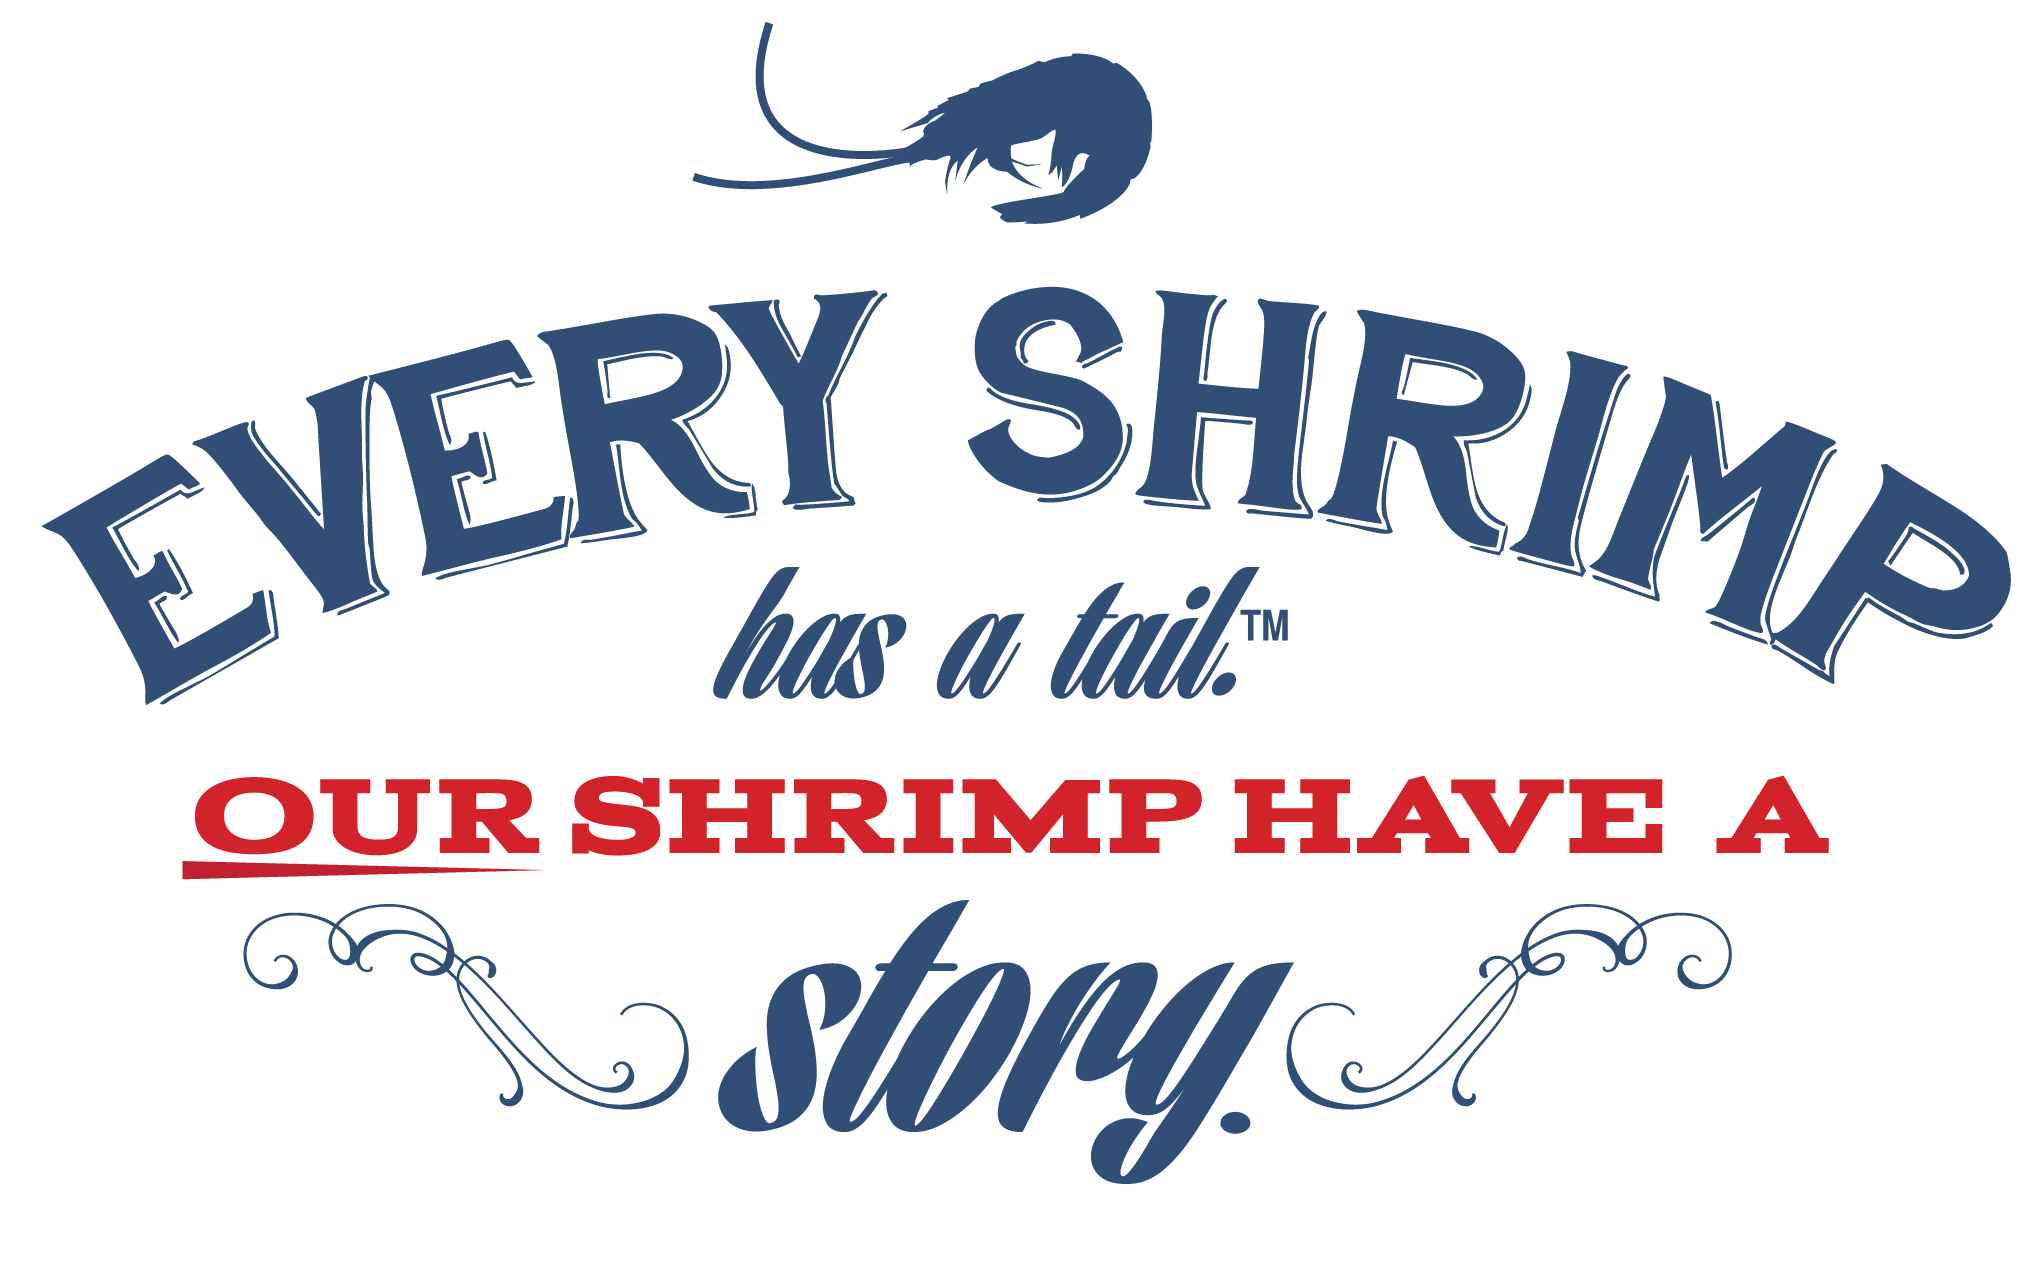 Every shrimp has a tale. Our shrimp have a story.